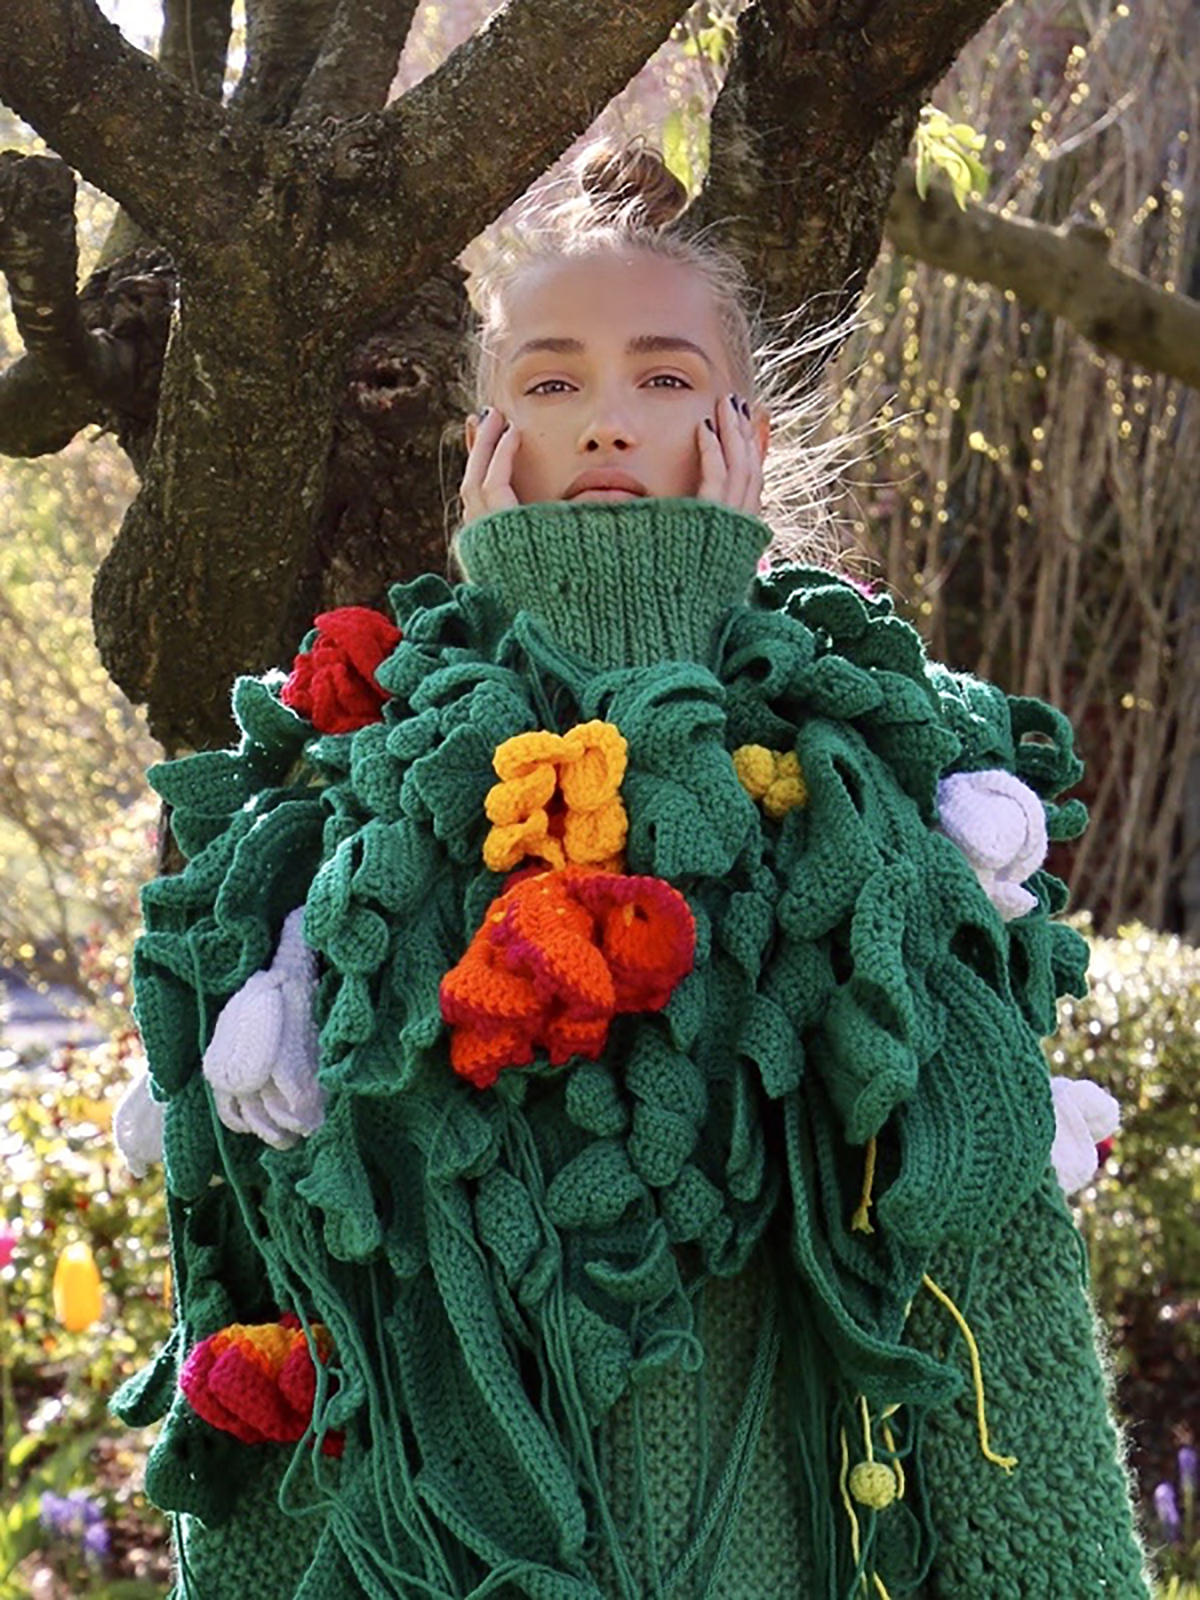 Shades of green oversized hand knit dress embelished w/brightly colored crochet botanical elements